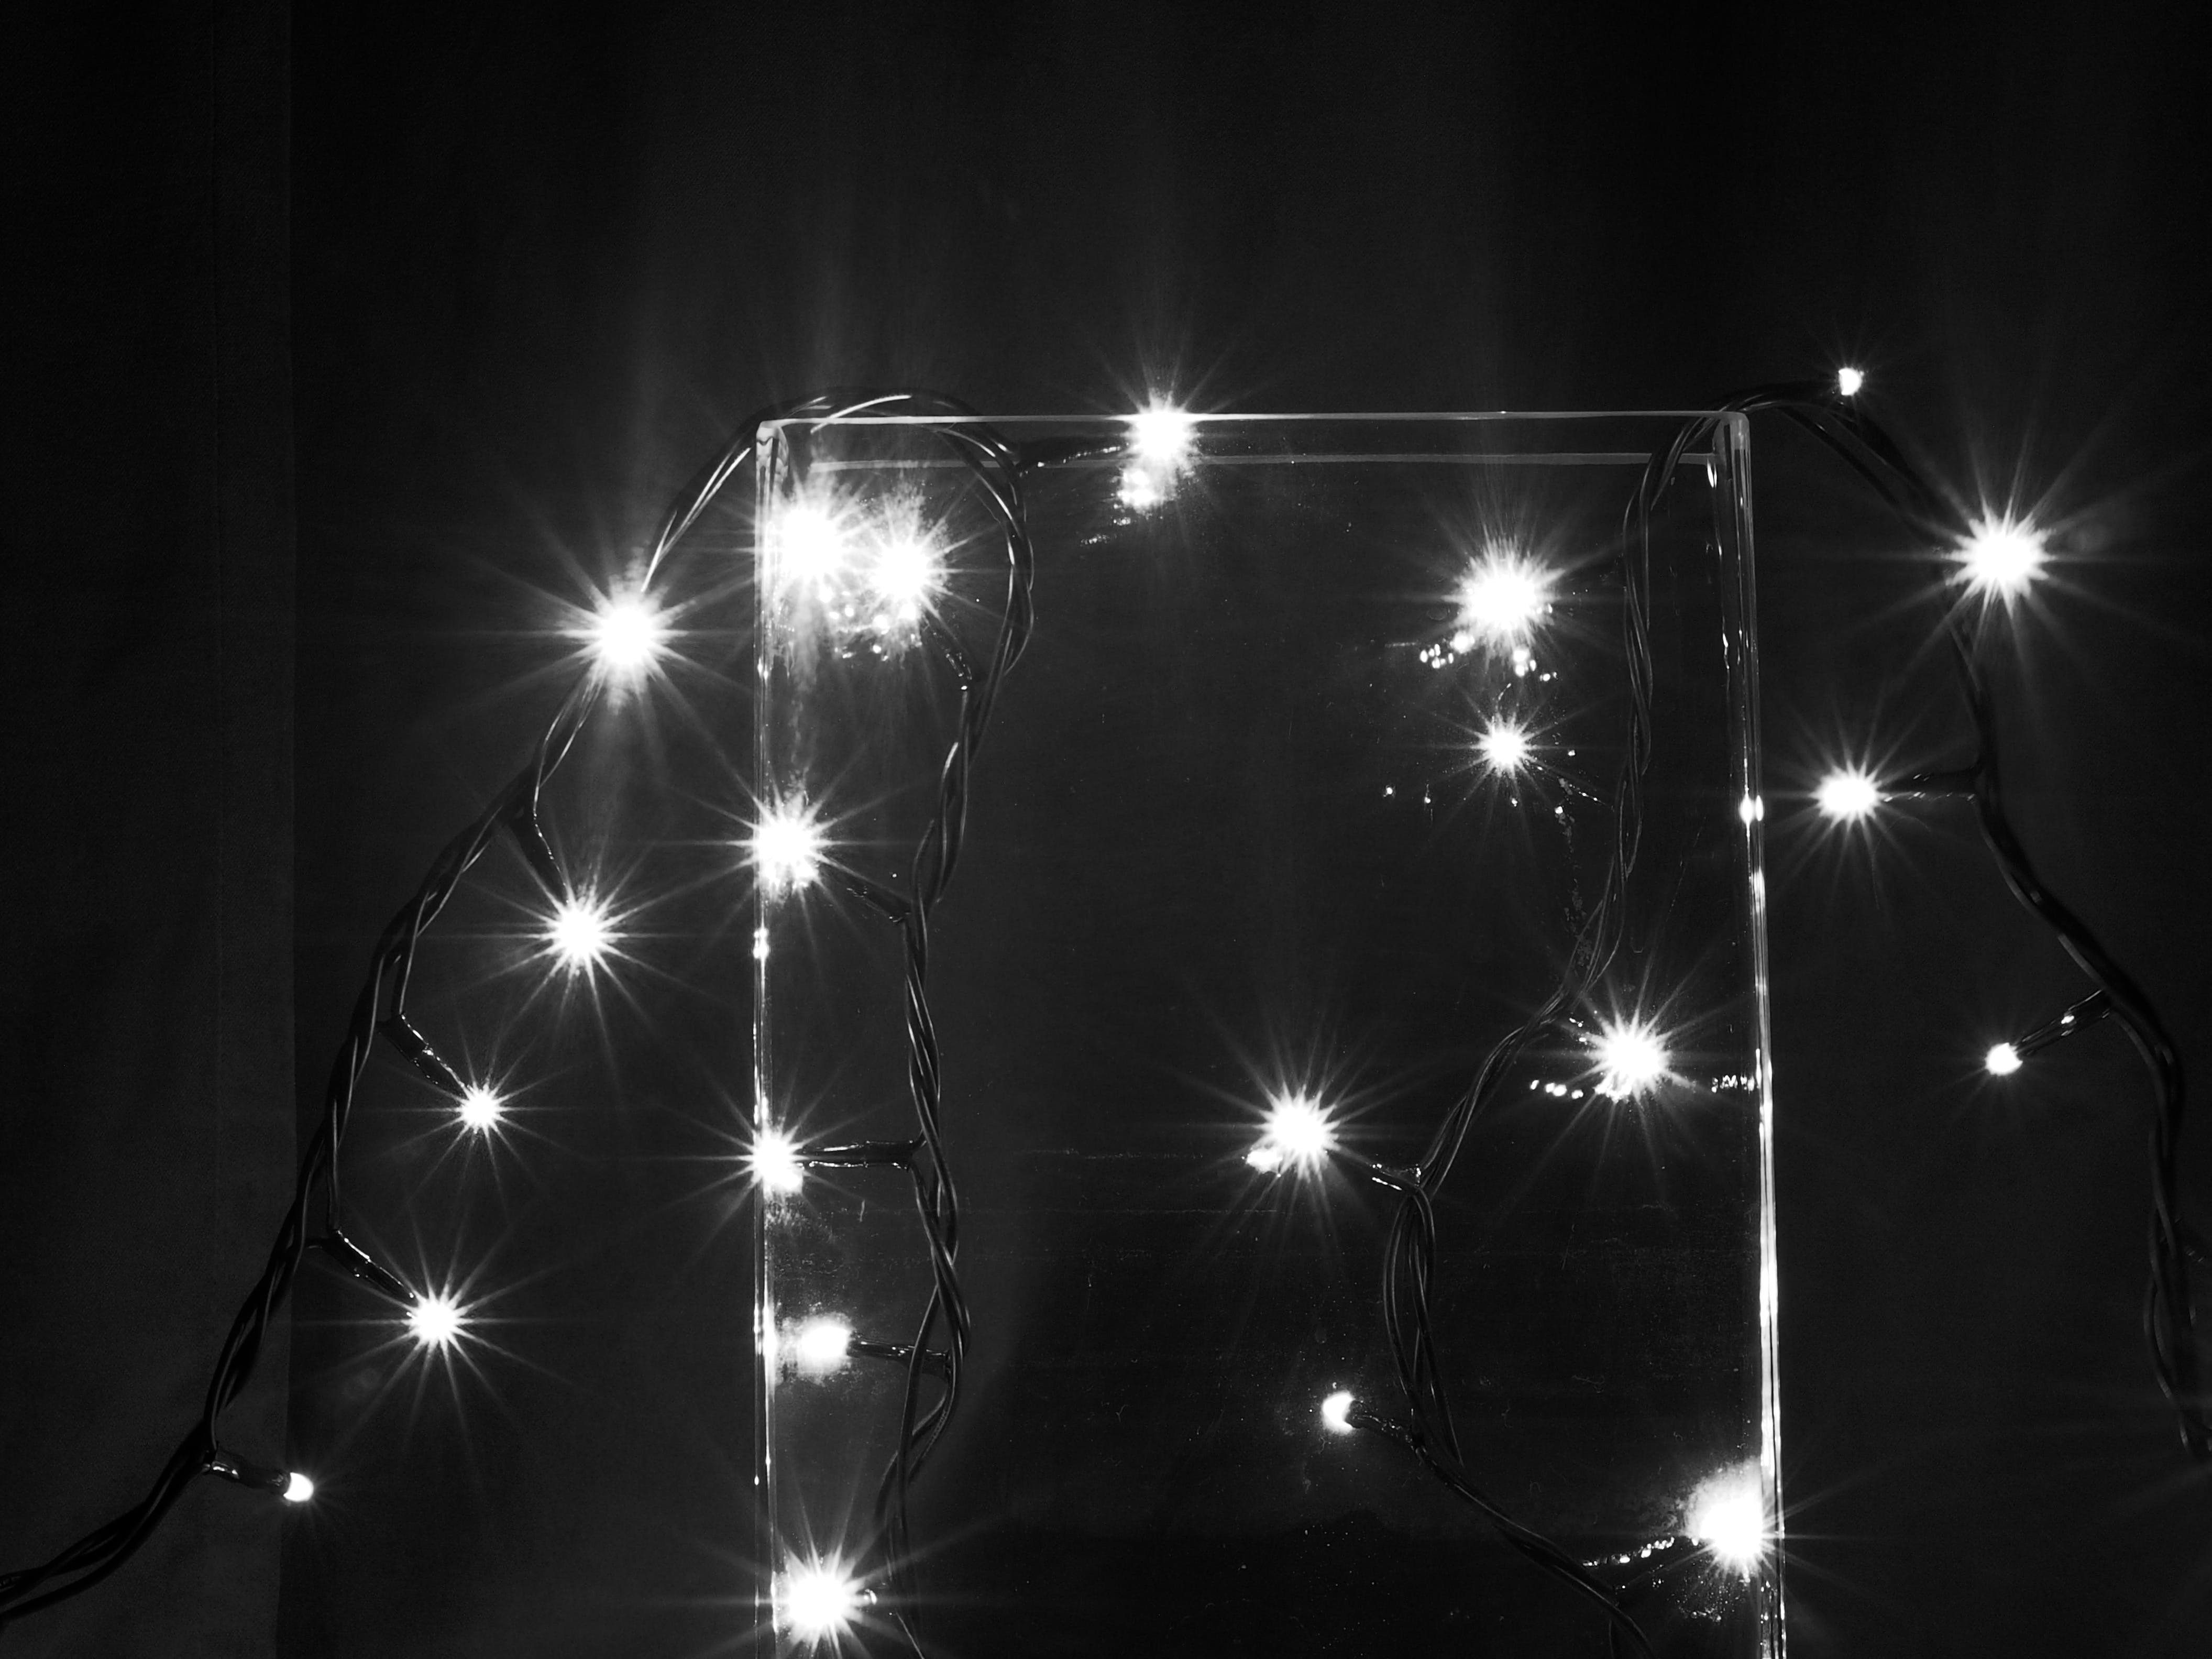 Free stock photo of lights, long exposure, black and-white